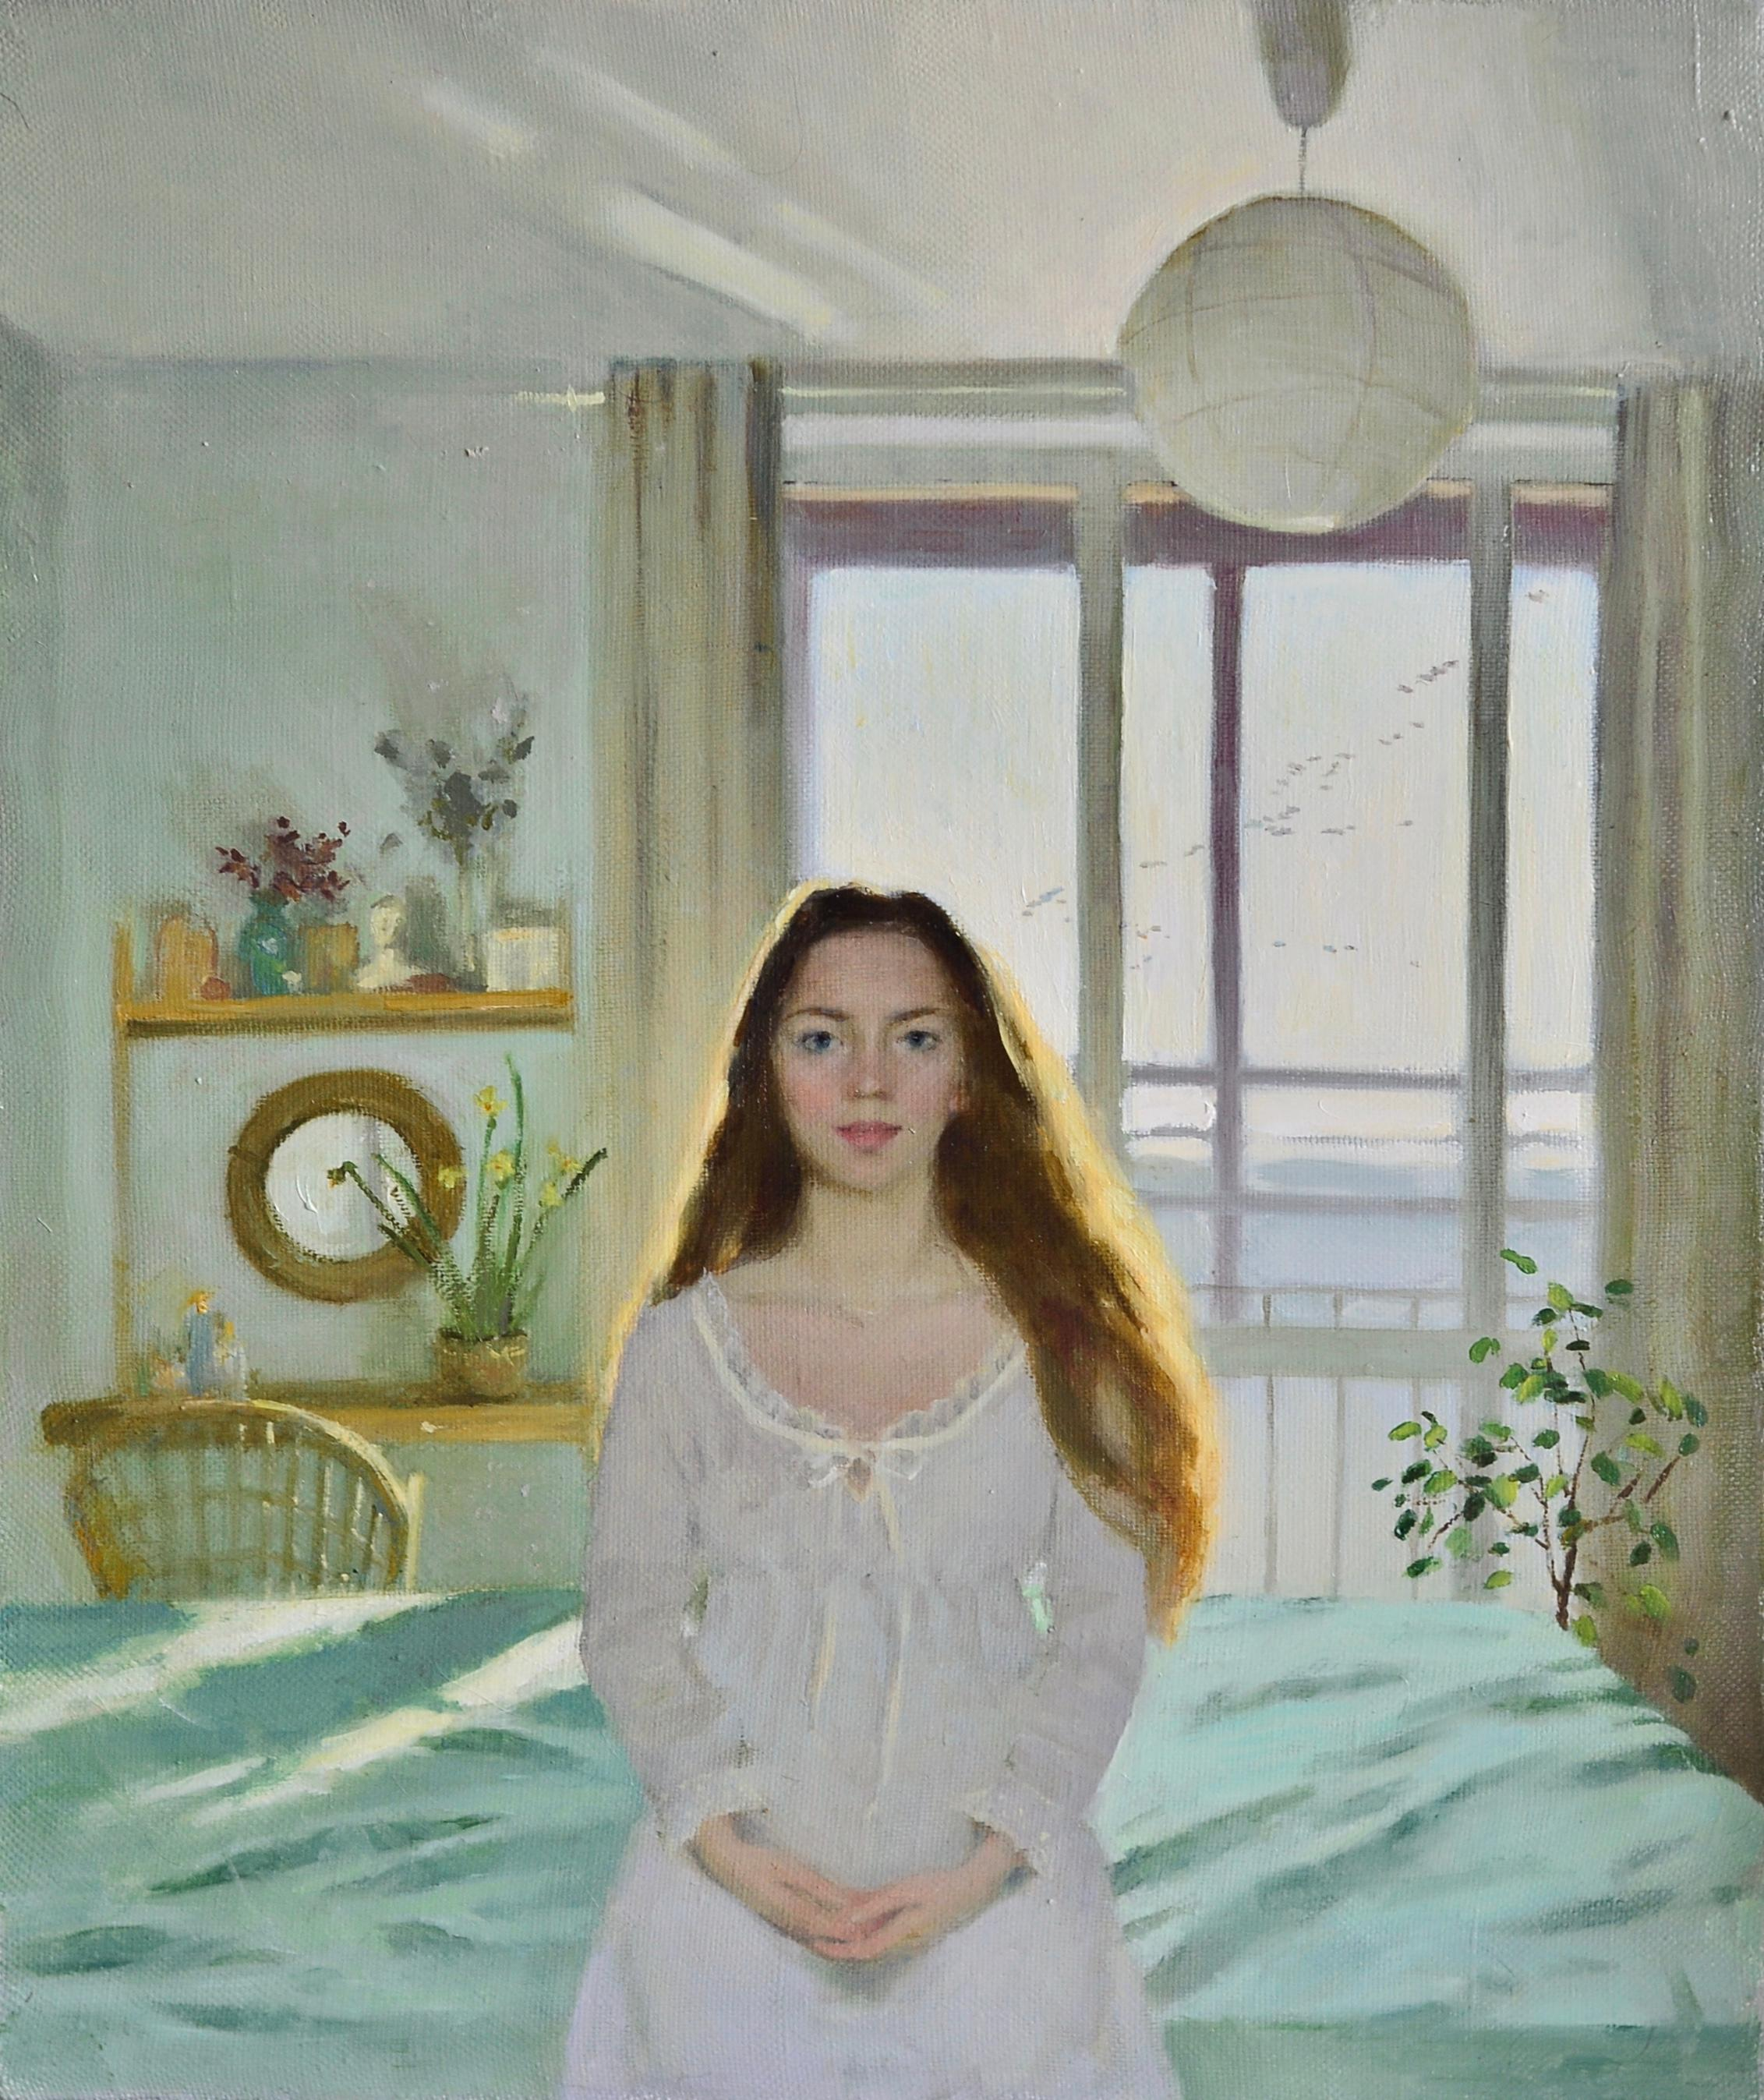 Goodmorning! - 21st Century figurative Interior Painting of a Girl in her Room